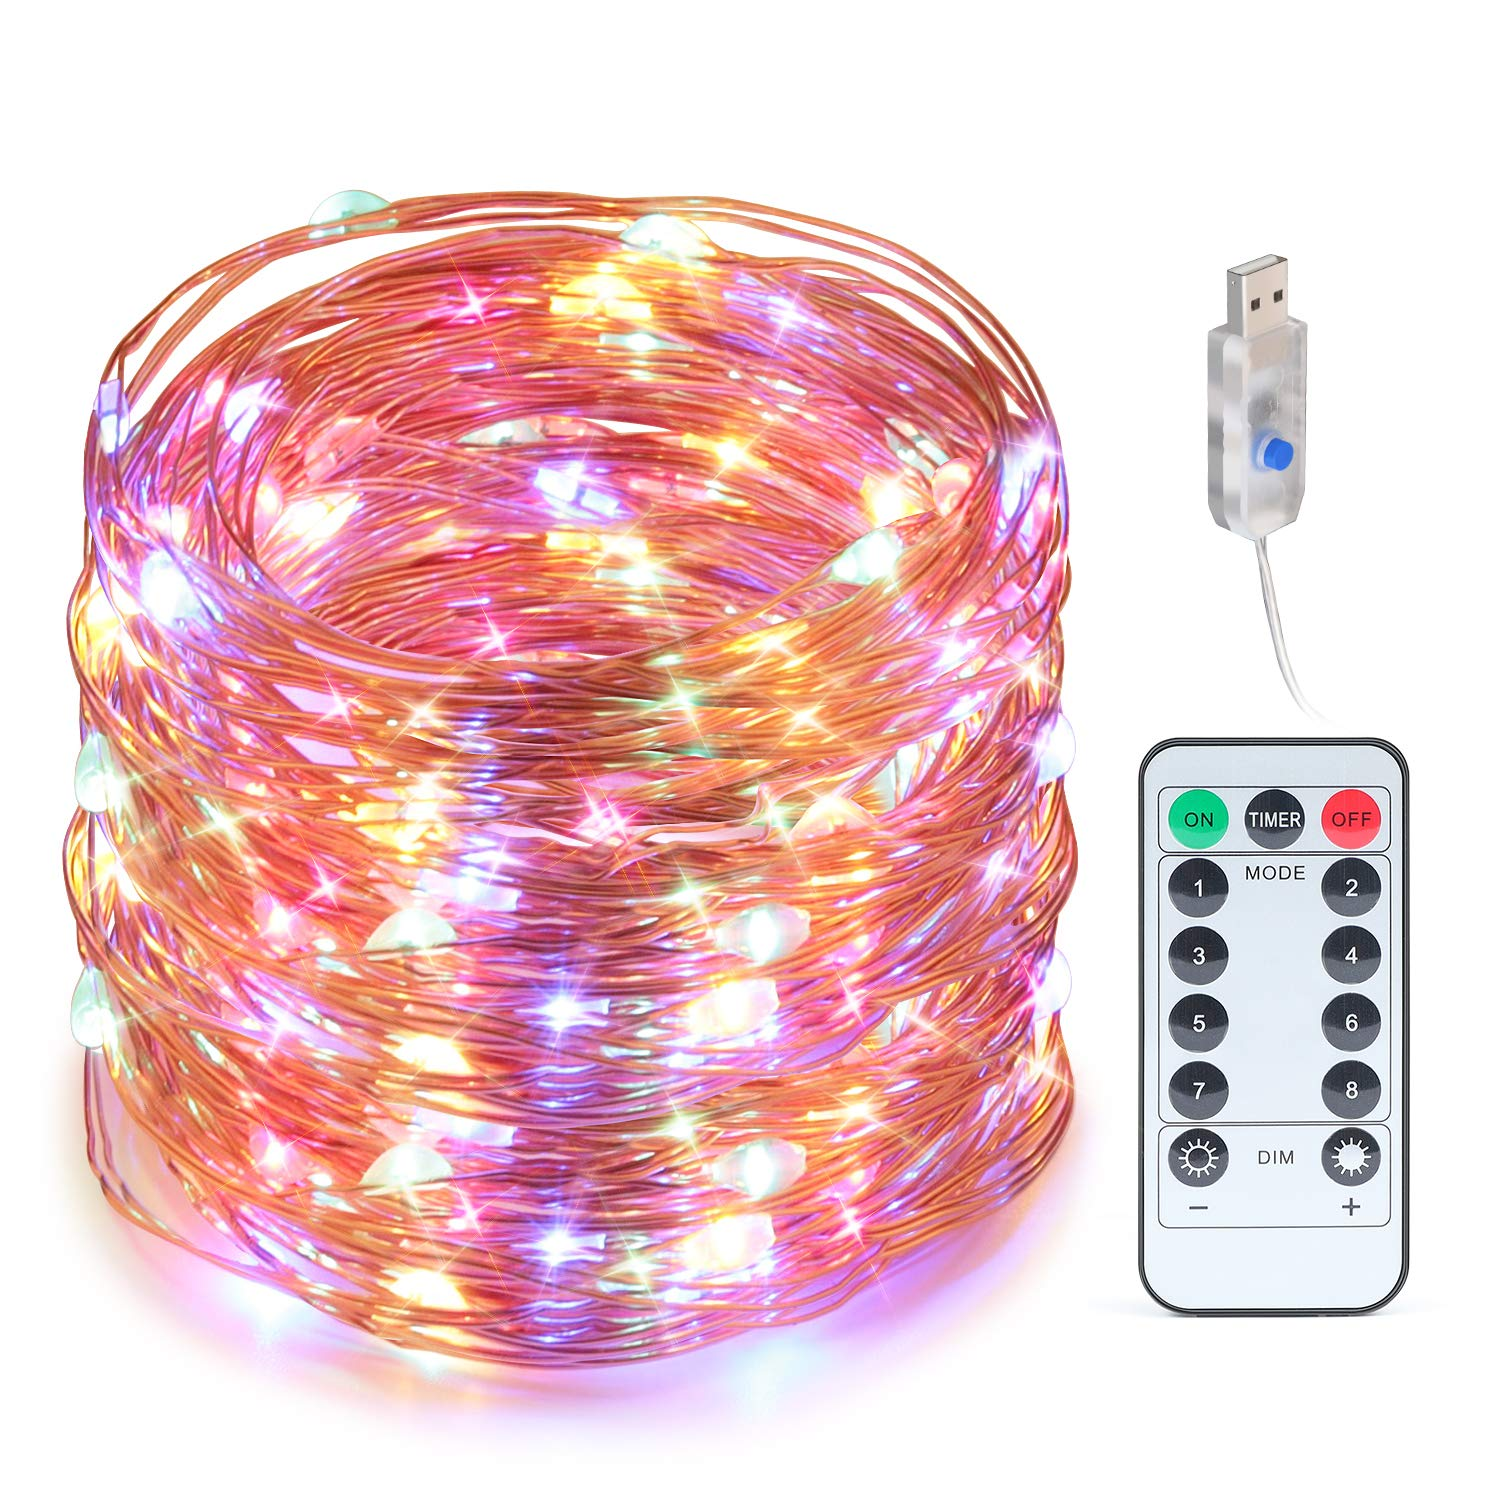 Craftersmark String Ligths USB Powered Fairy Lights 66ft 200 LEDs Timer Copper Wire Waterproof Bedroom for Christmas Thanksgiving Easter Halloween Party Wedding Decoration (Remote Control Included)